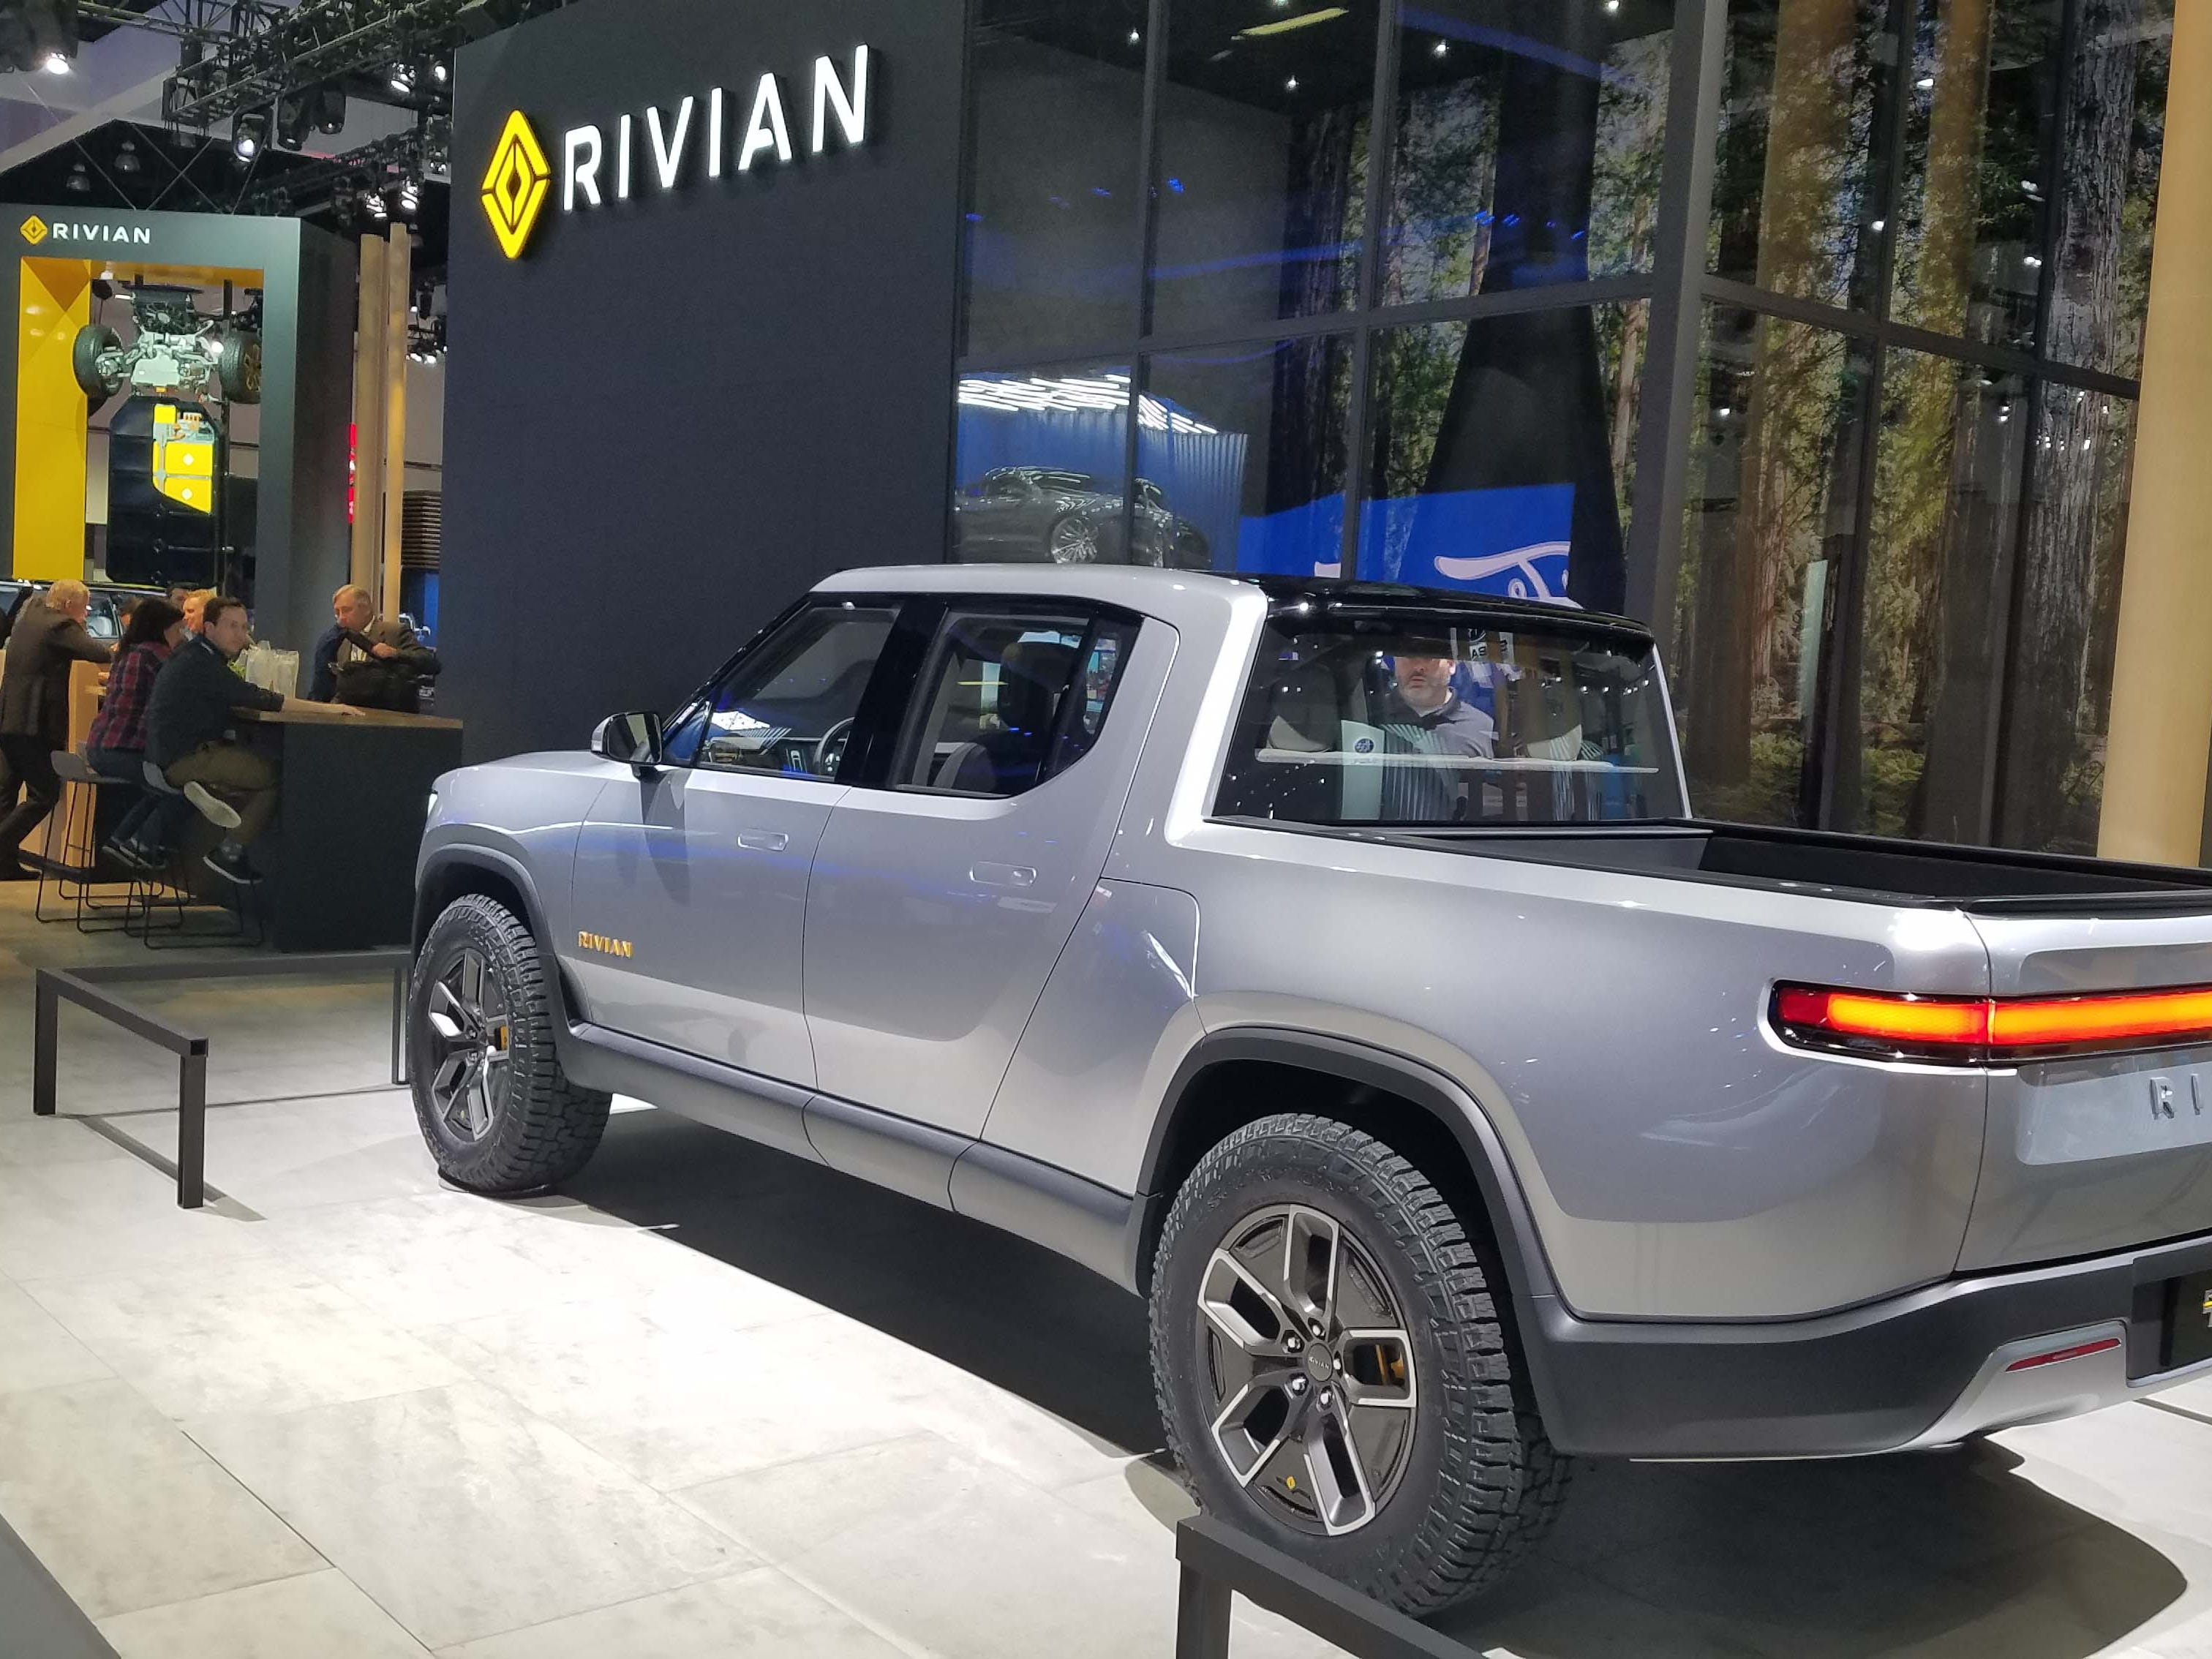 The Rivian R1T pickup and sister R1S SUV wowed the LA auto show last fall. The company is based in Plymouth, Mich. with a manufacturing plant in Normal, Ill.